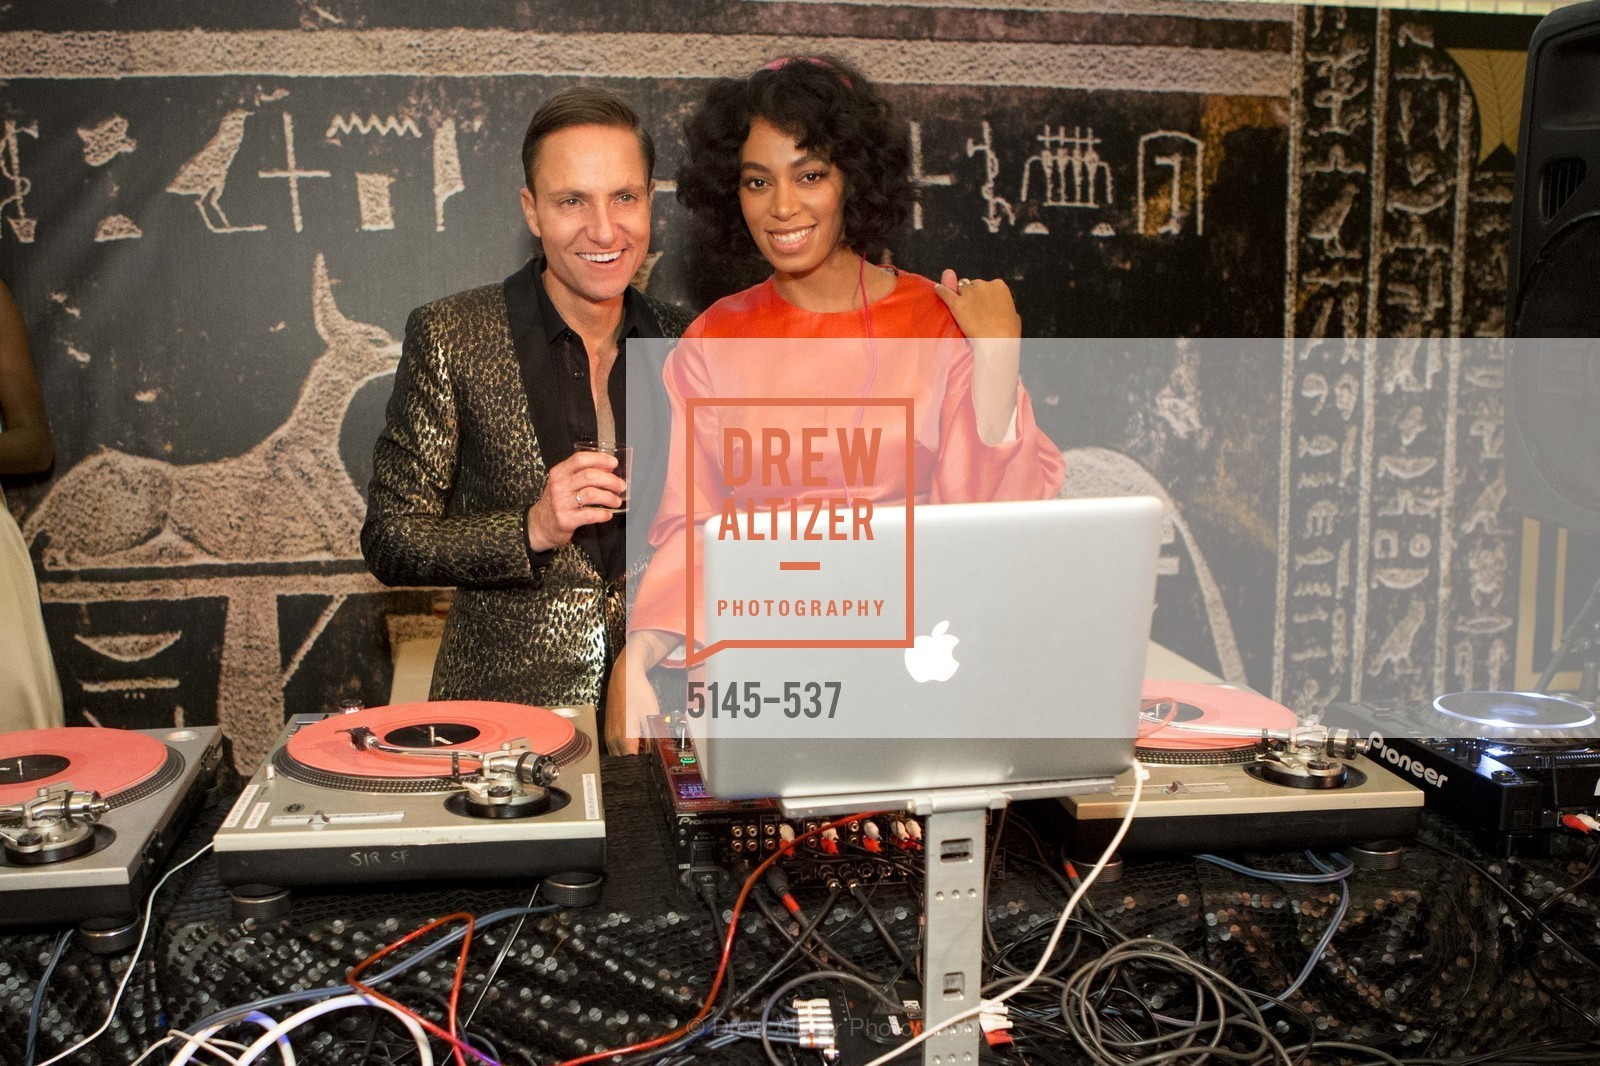 Ken Fulk, Dj, TOP OF THE MARK'S 75TH Anniversary Party, US, November 7th, 2014,Drew Altizer, Drew Altizer Photography, full-service agency, private events, San Francisco photographer, photographer california